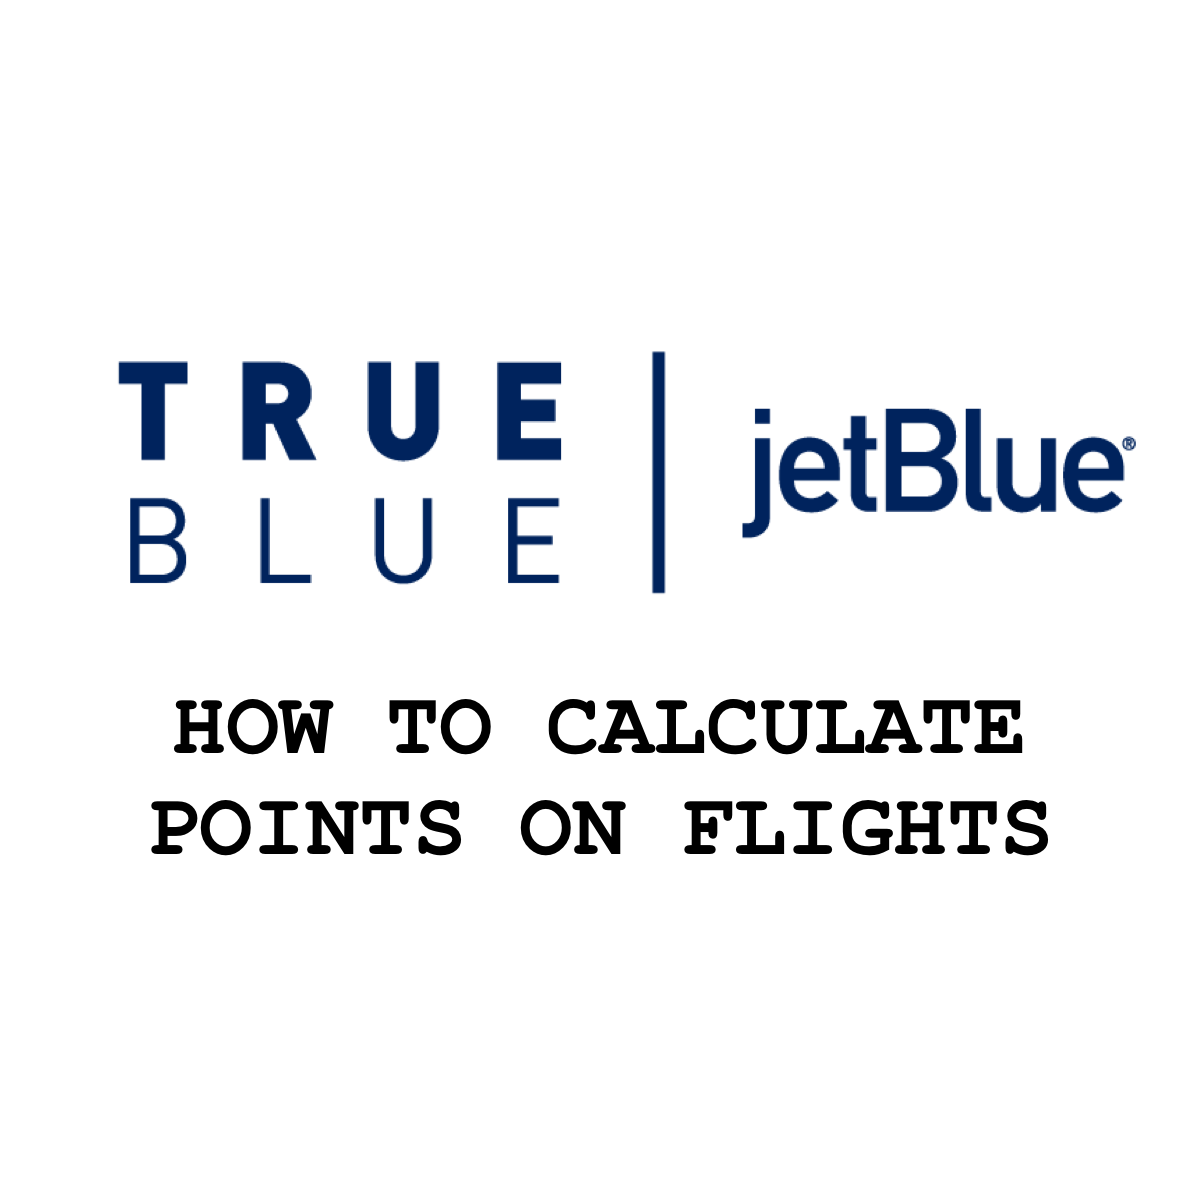 How To Calculate Jetblue Points On Flights Calculator Jetblue Online Travel Agency Pointe